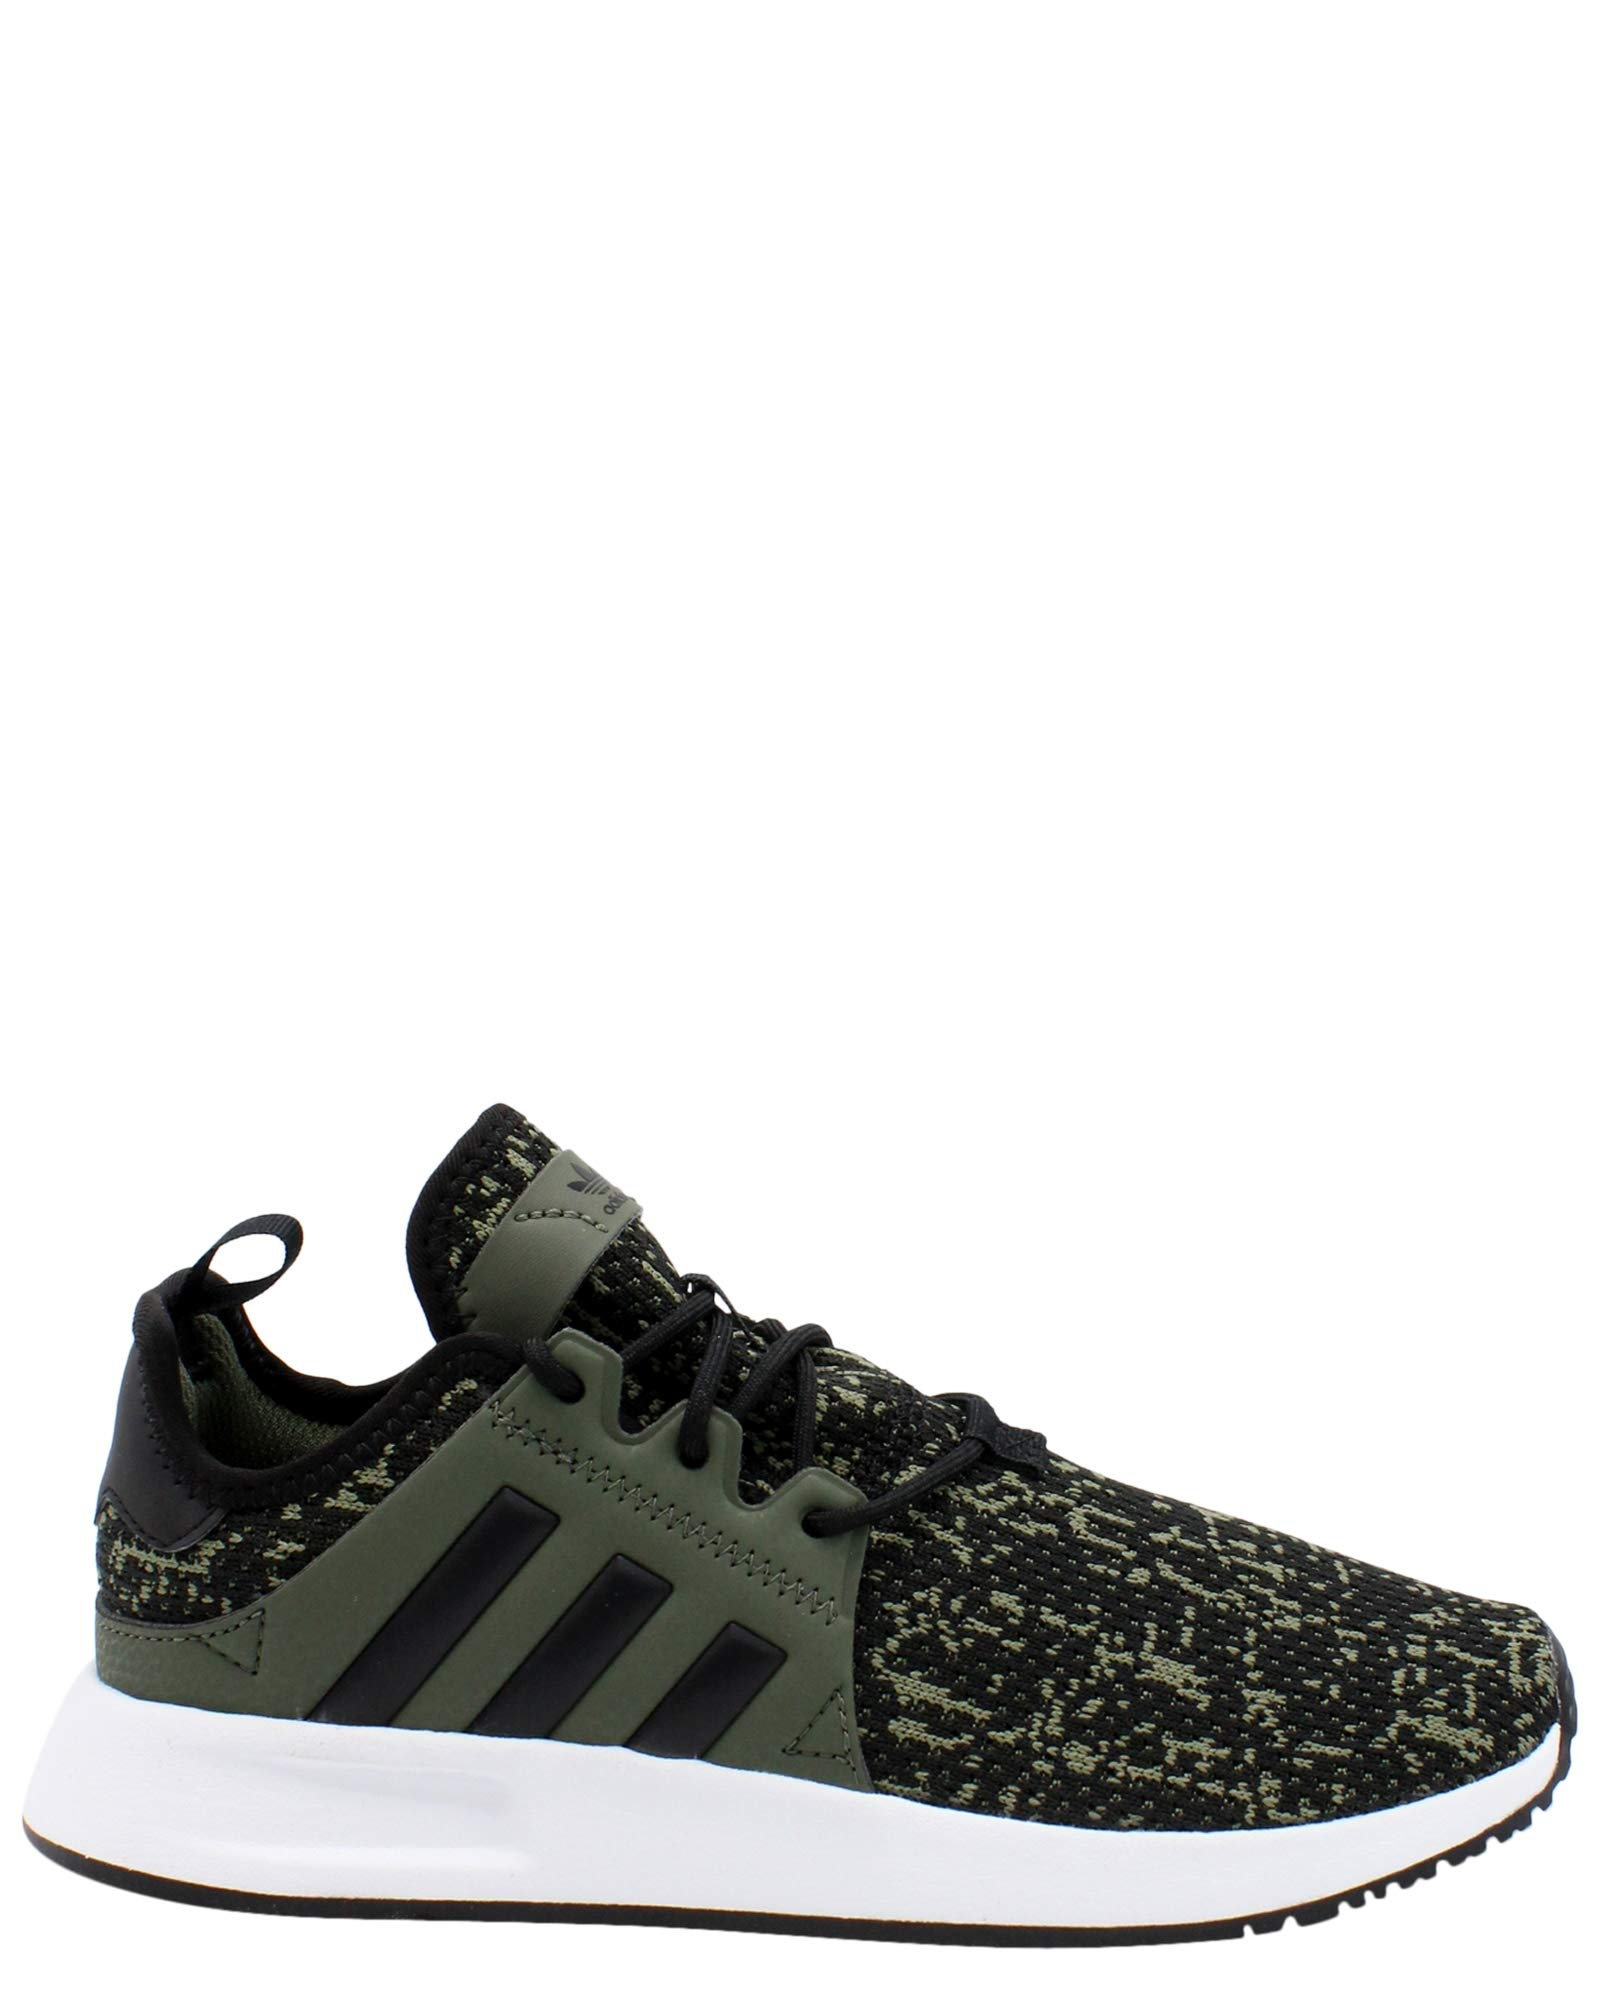 adidas Originals Kids Boy's X_PLR C (Little Kid) Base Green/Black/White 1 M US Little Kid